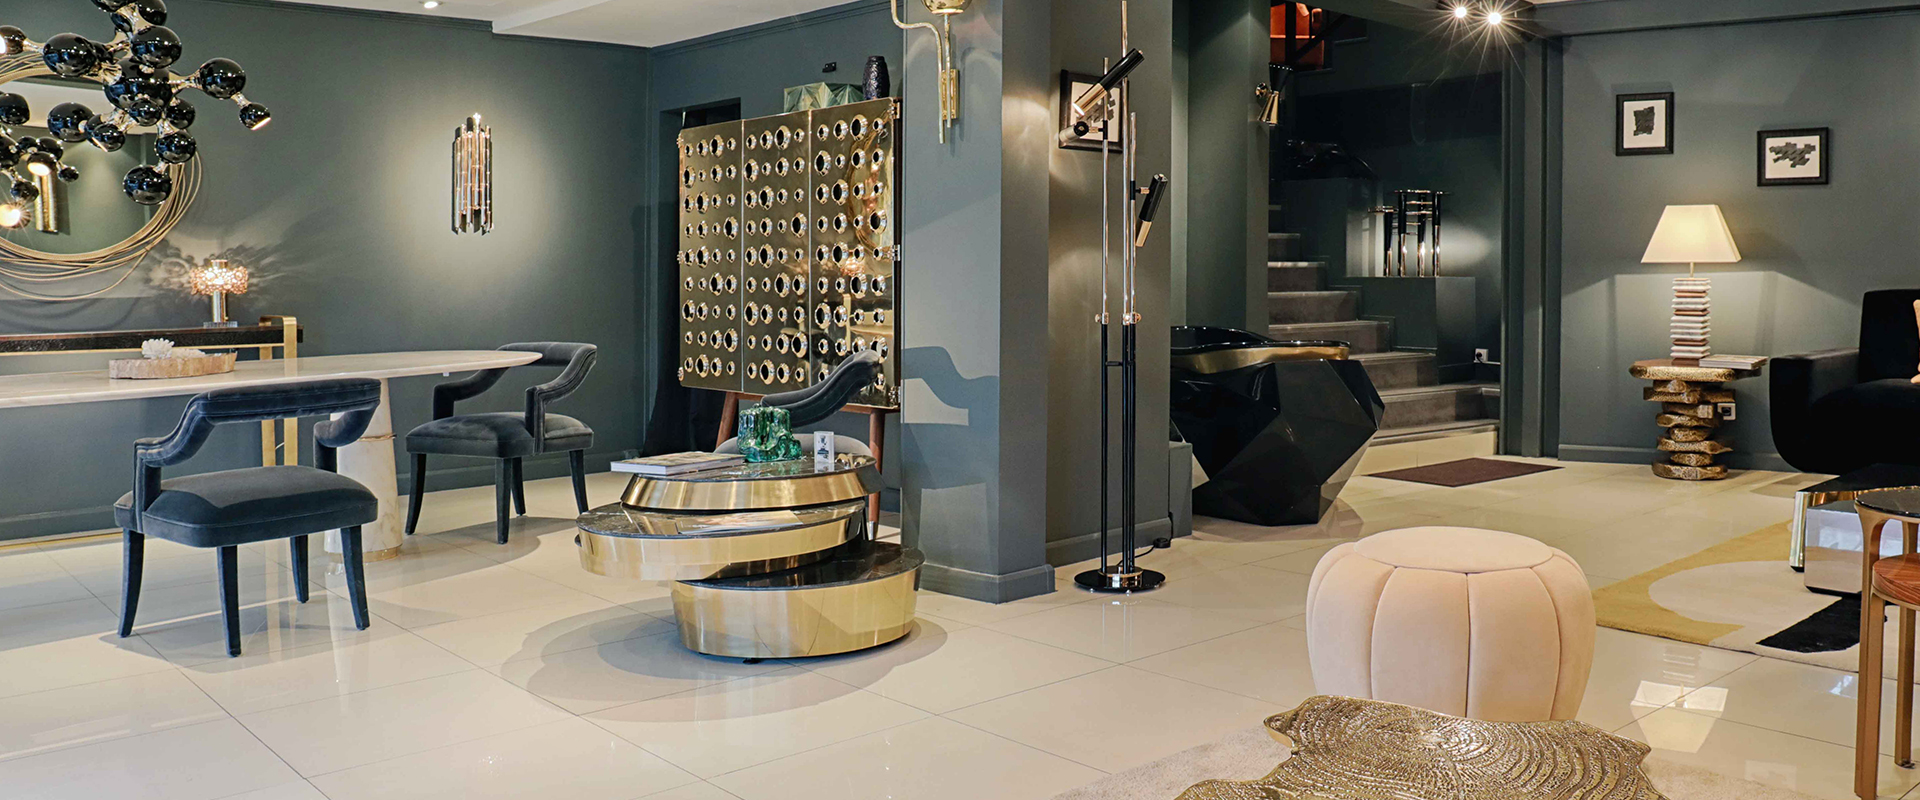 covet paris showroom Covet Paris Showroom -The Finest Bathroom Furniture Just a Click Away covet paris